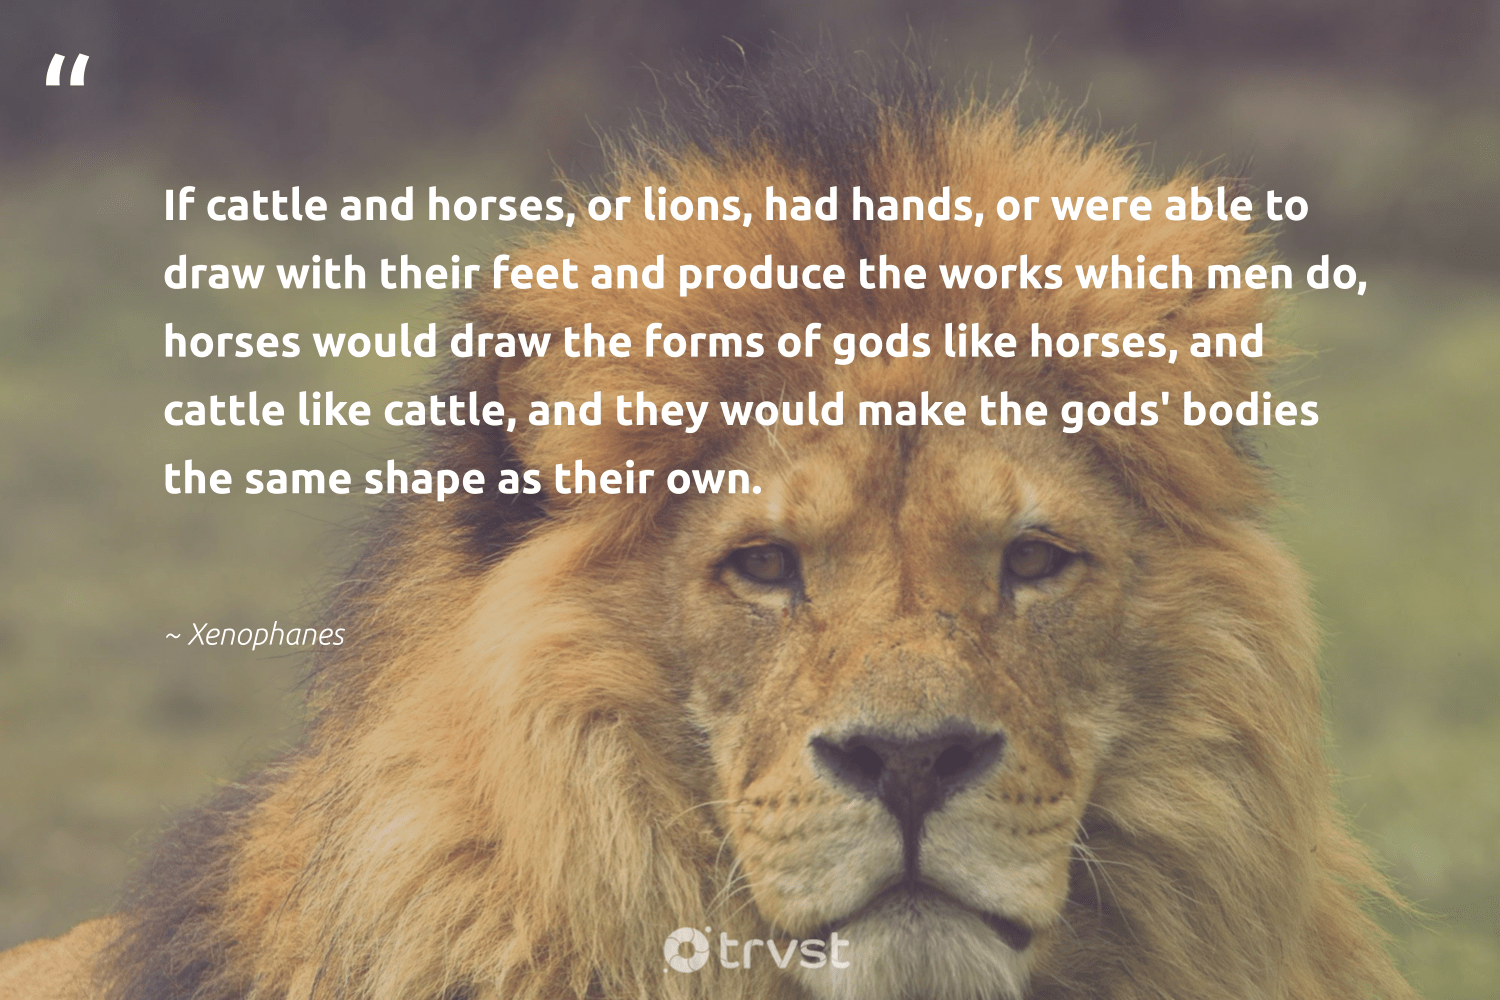 """""""If cattle and horses, or lions, had hands, or were able to draw with their feet and produce the works which men do, horses would draw the forms of gods like horses, and cattle like cattle, and they would make the gods' bodies the same shape as their own.""""  - Xenophanes #trvst #quotes #lions #biodiversity #beinspired #conservation #changetheworld #perfectnature #bethechange #protectnature #socialimpact #wild"""